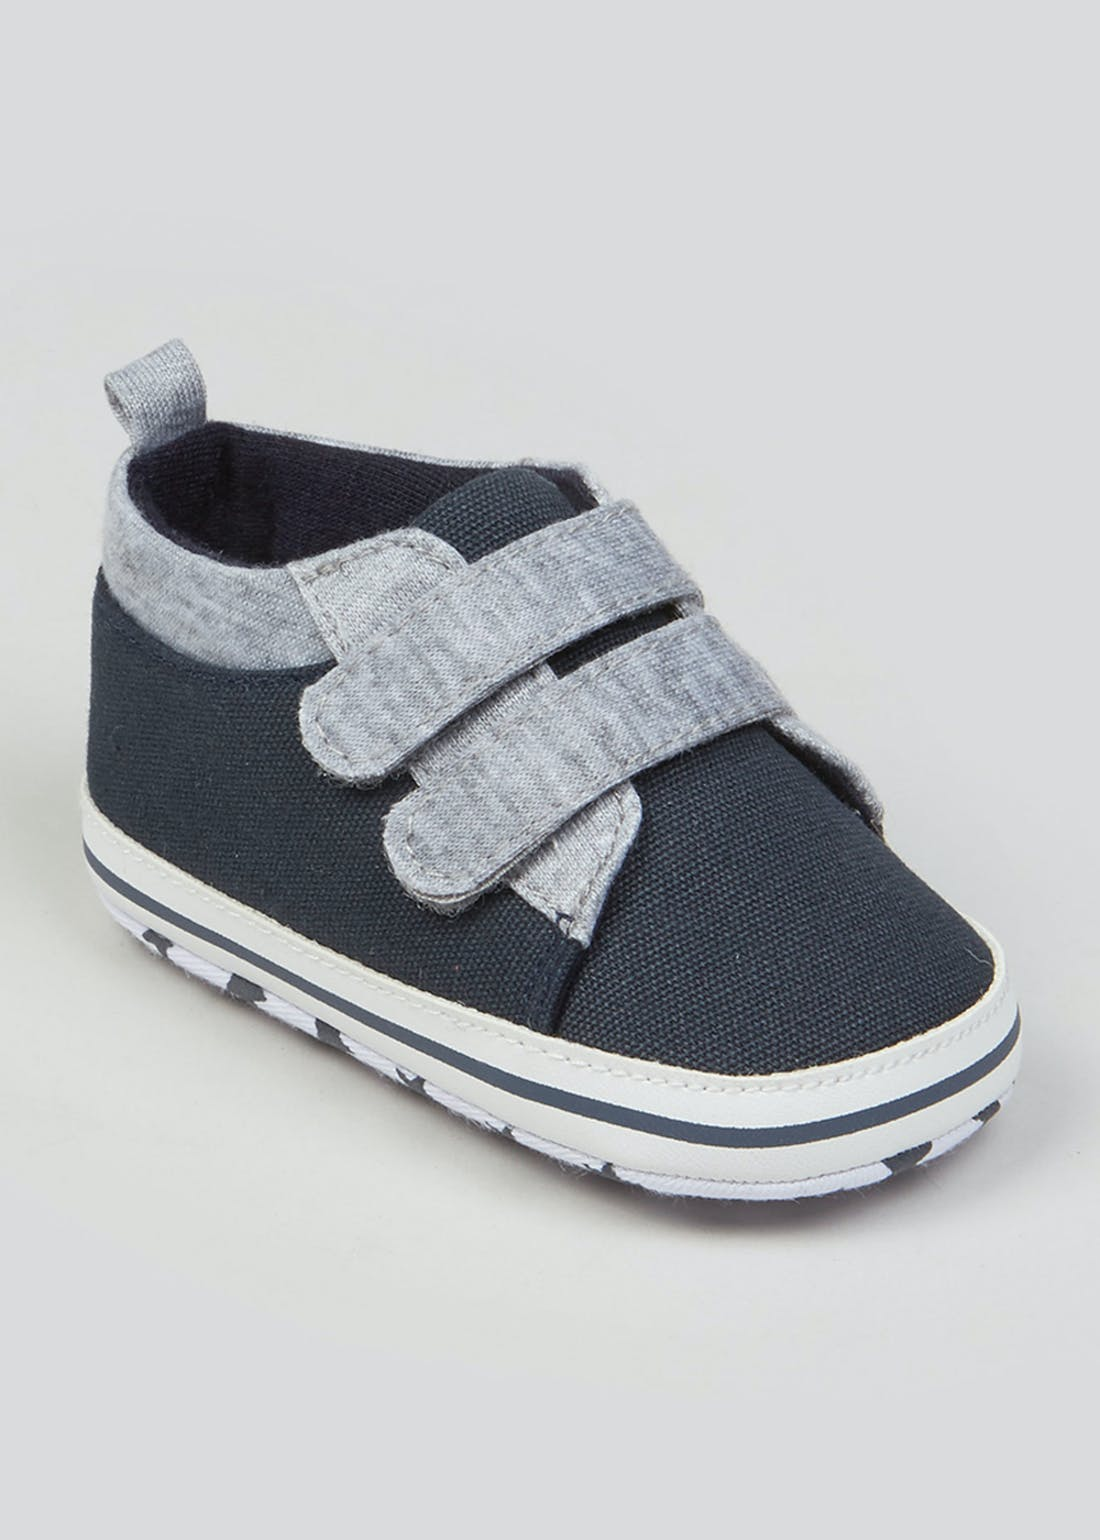 Unisex Navy Soft Sole Baby Trainers (Newborn-18mths)